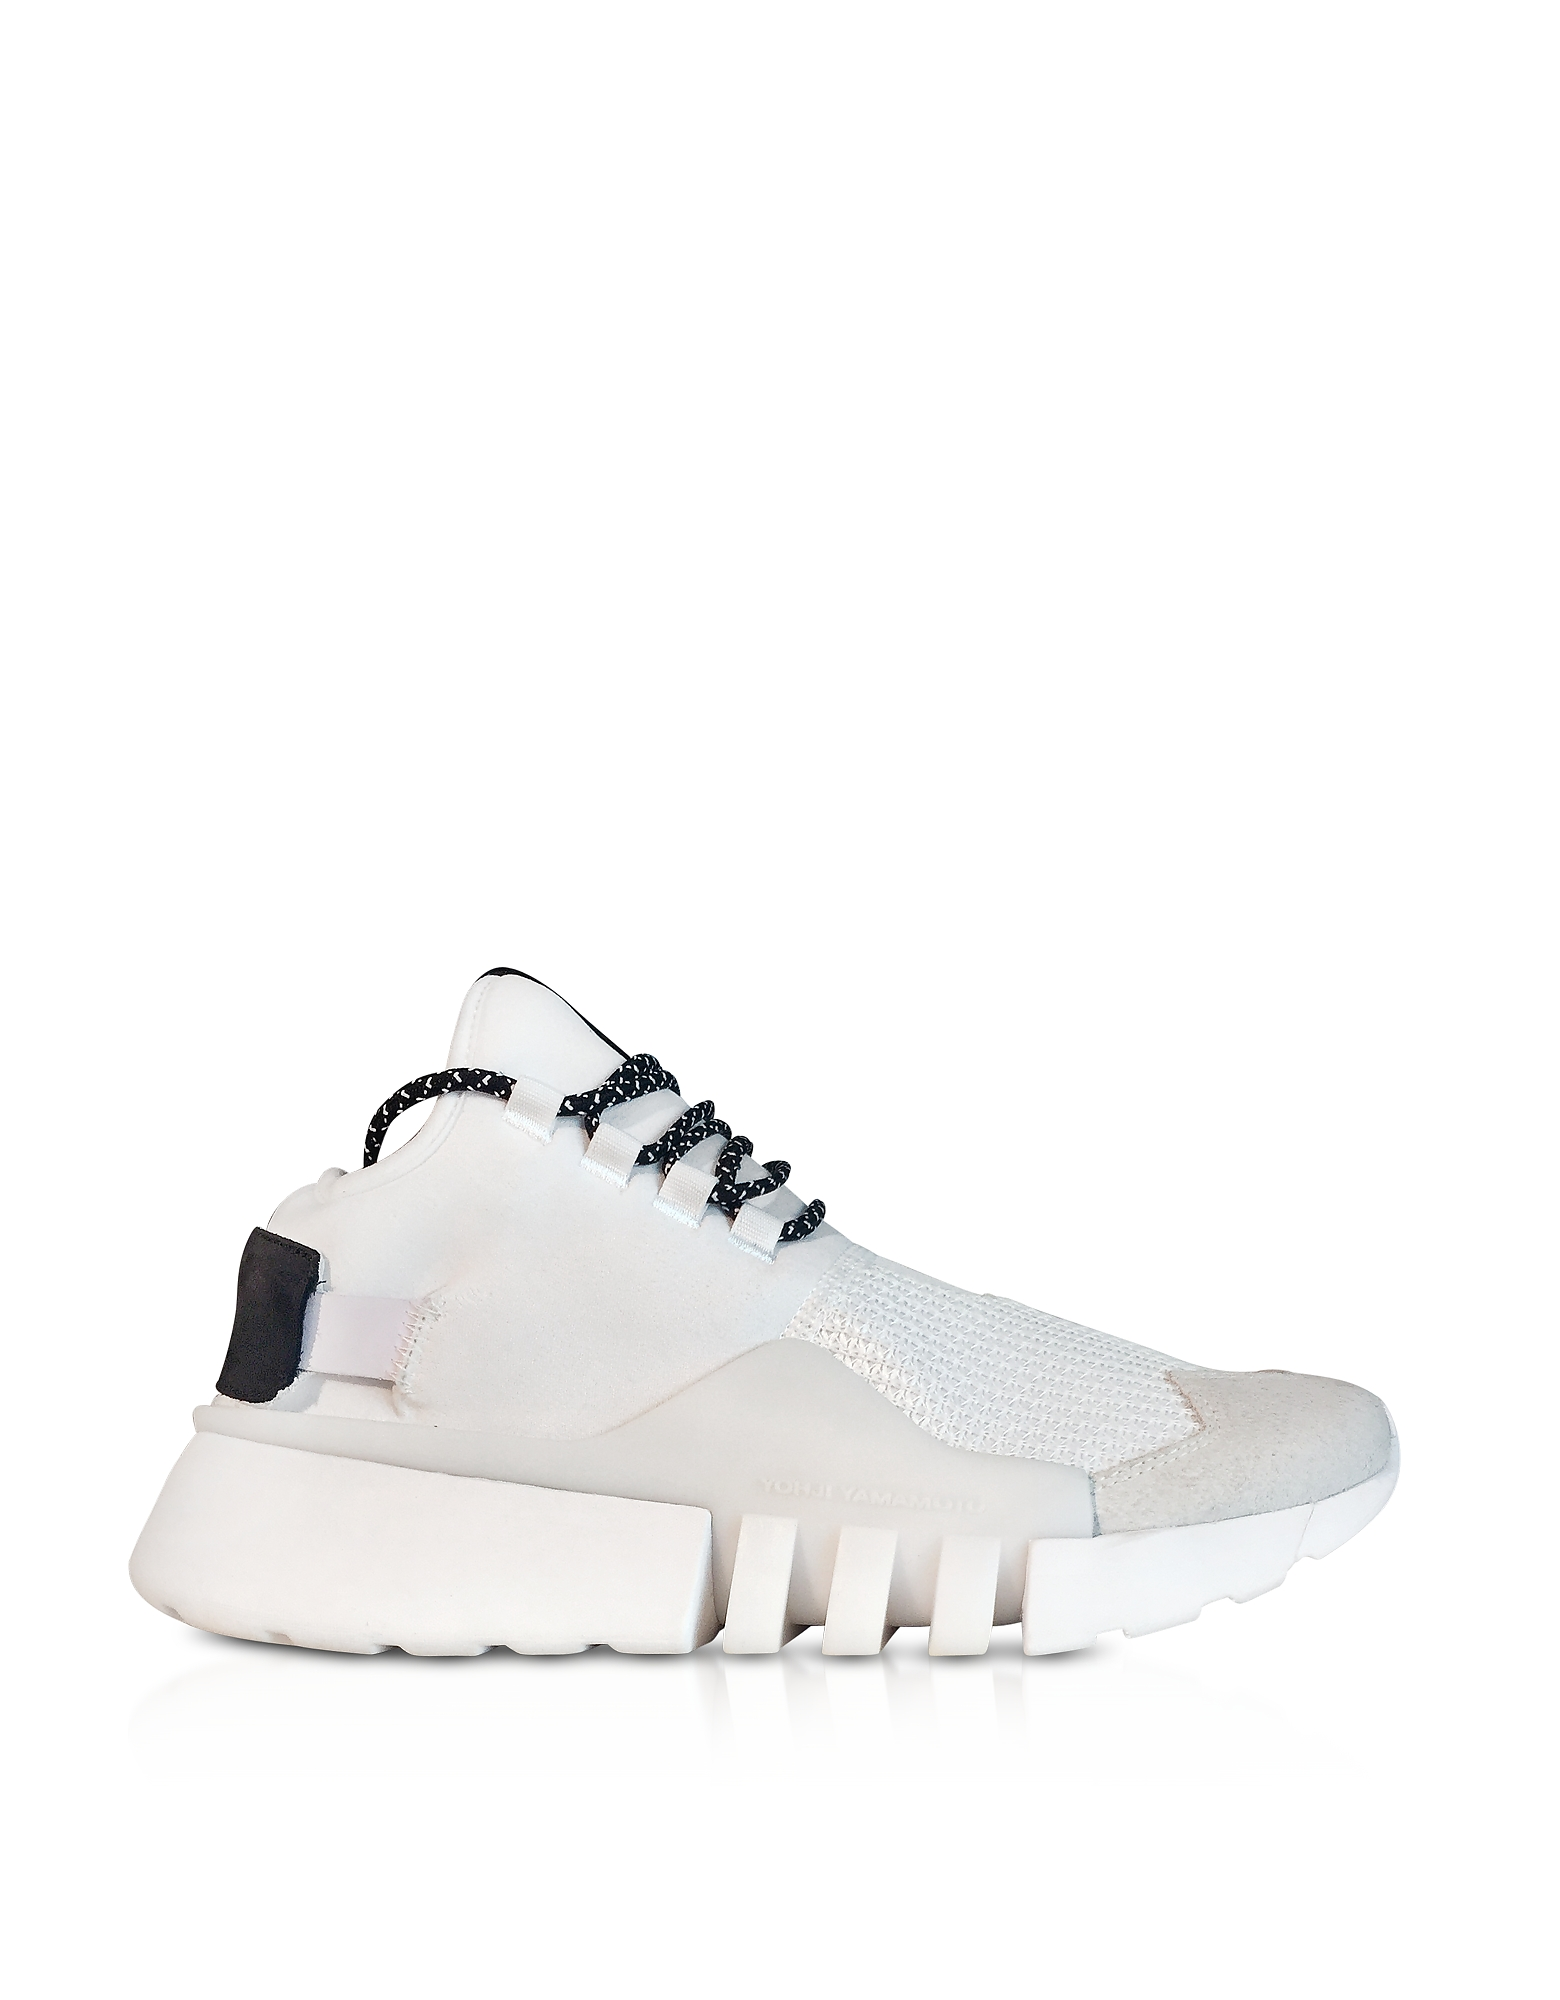 Y-3 Shoes, White Nylon Y-3 Ayero Sneakers